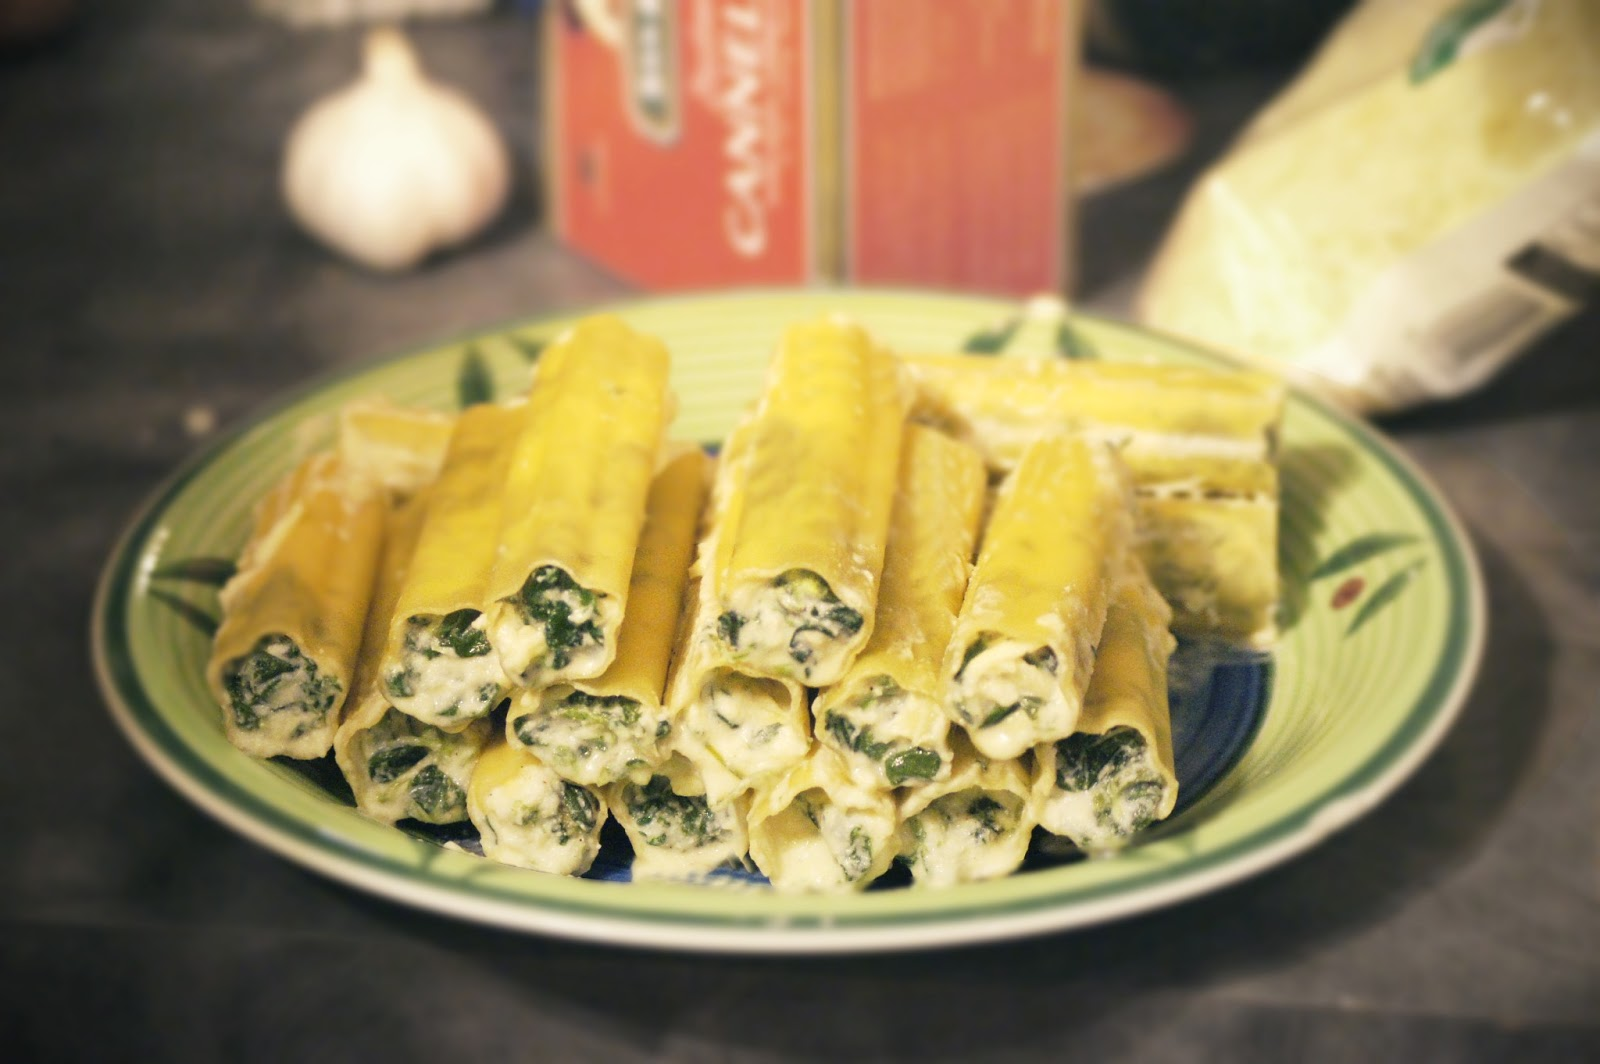 cannelloni recipes, pasta, cannelloni filling, jamie oliver cannelloni, italian recipes,